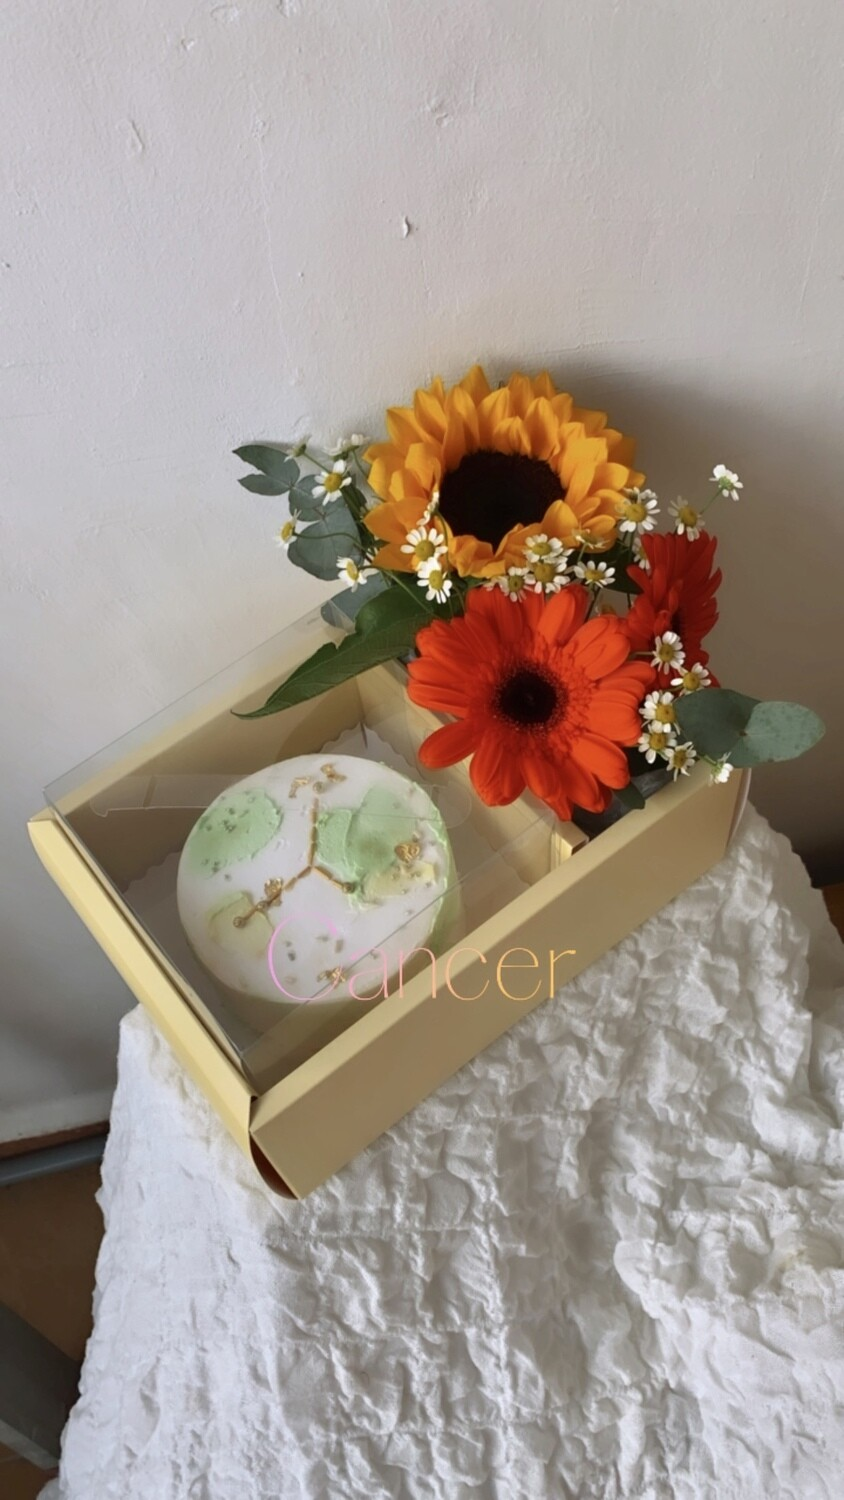 Cancer Horoscope Cake With Flower Box (By: Floral Bar By The Florestry from JB)